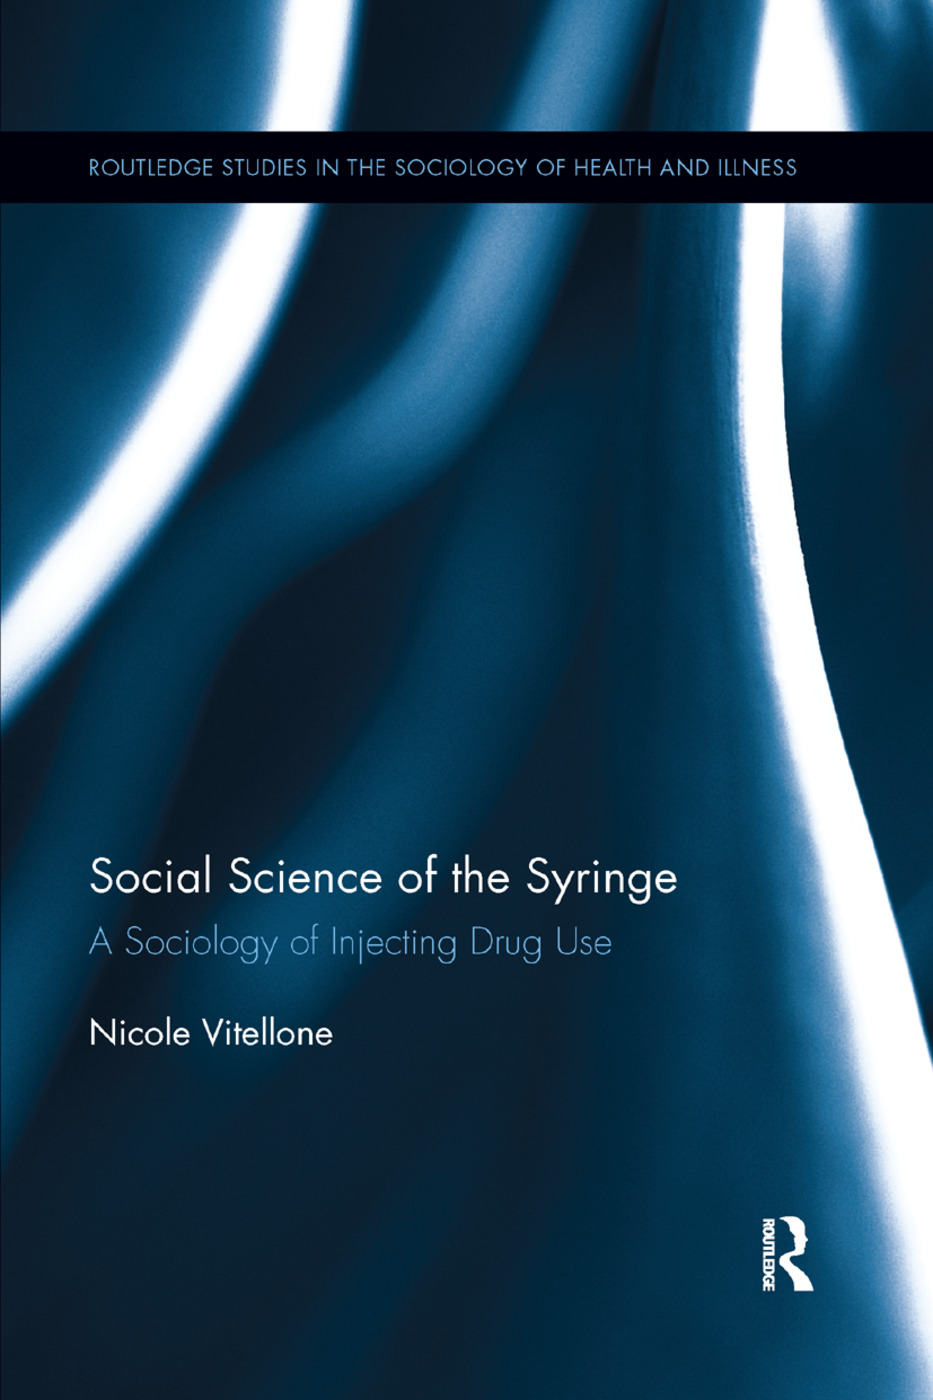 Social Science of the Syringe: A Sociology of Injecting Drug Use book cover